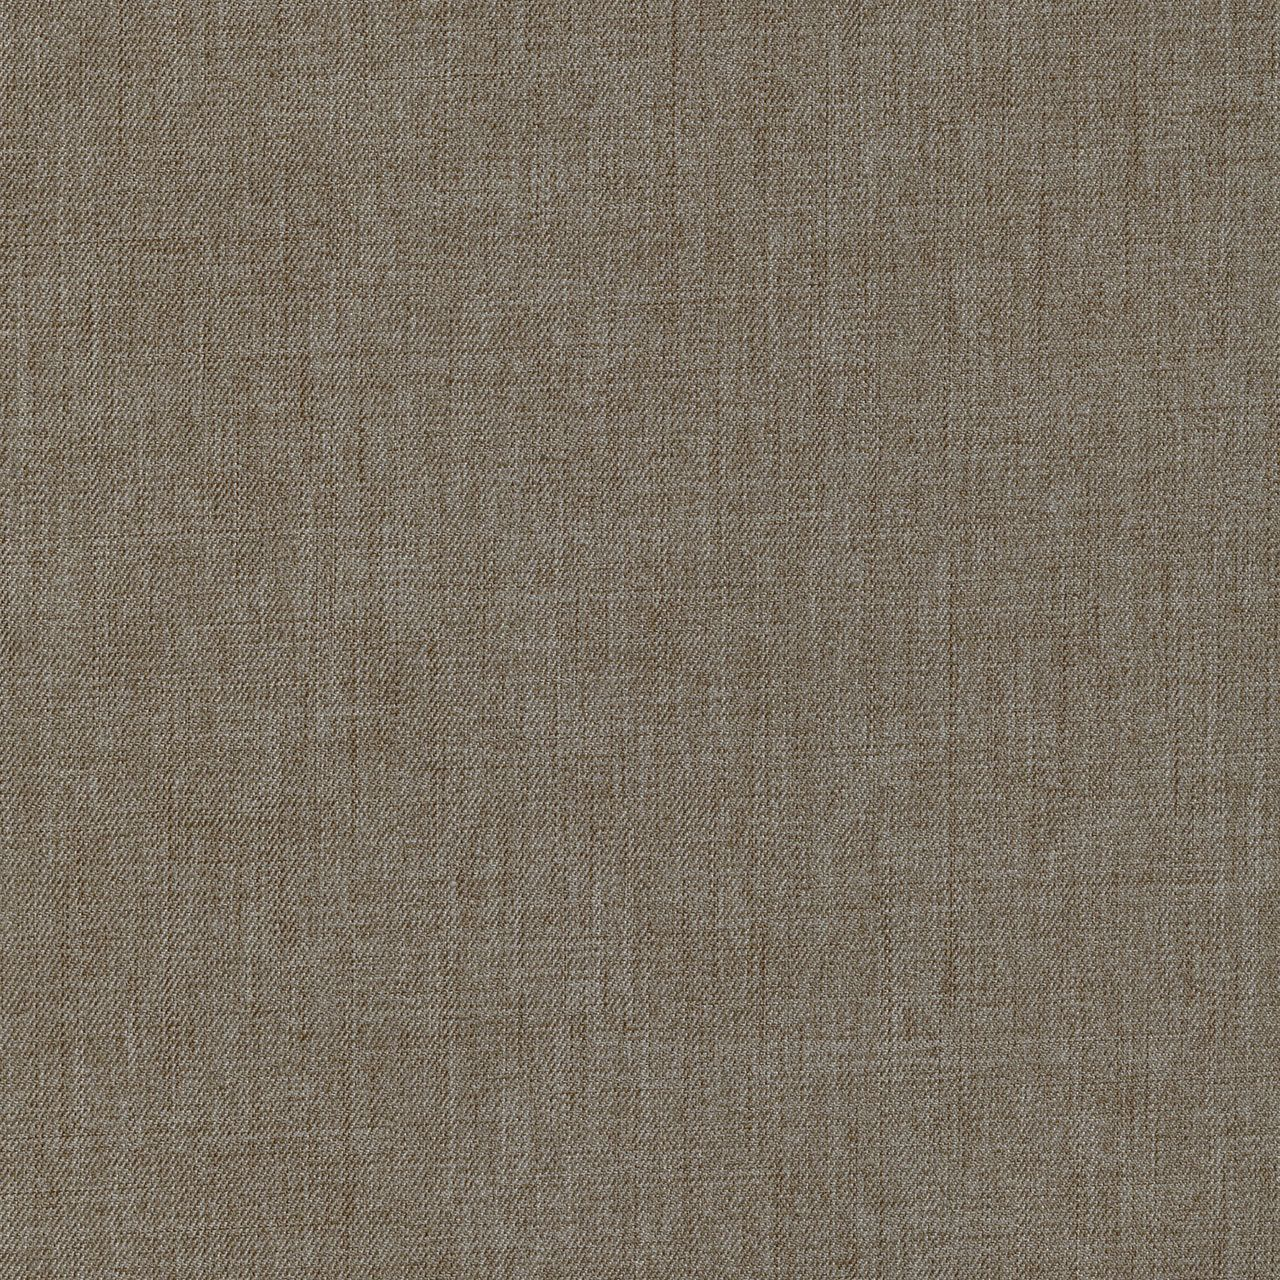 Furniture Upholstery Near Me: Find Local Crypton Fabric